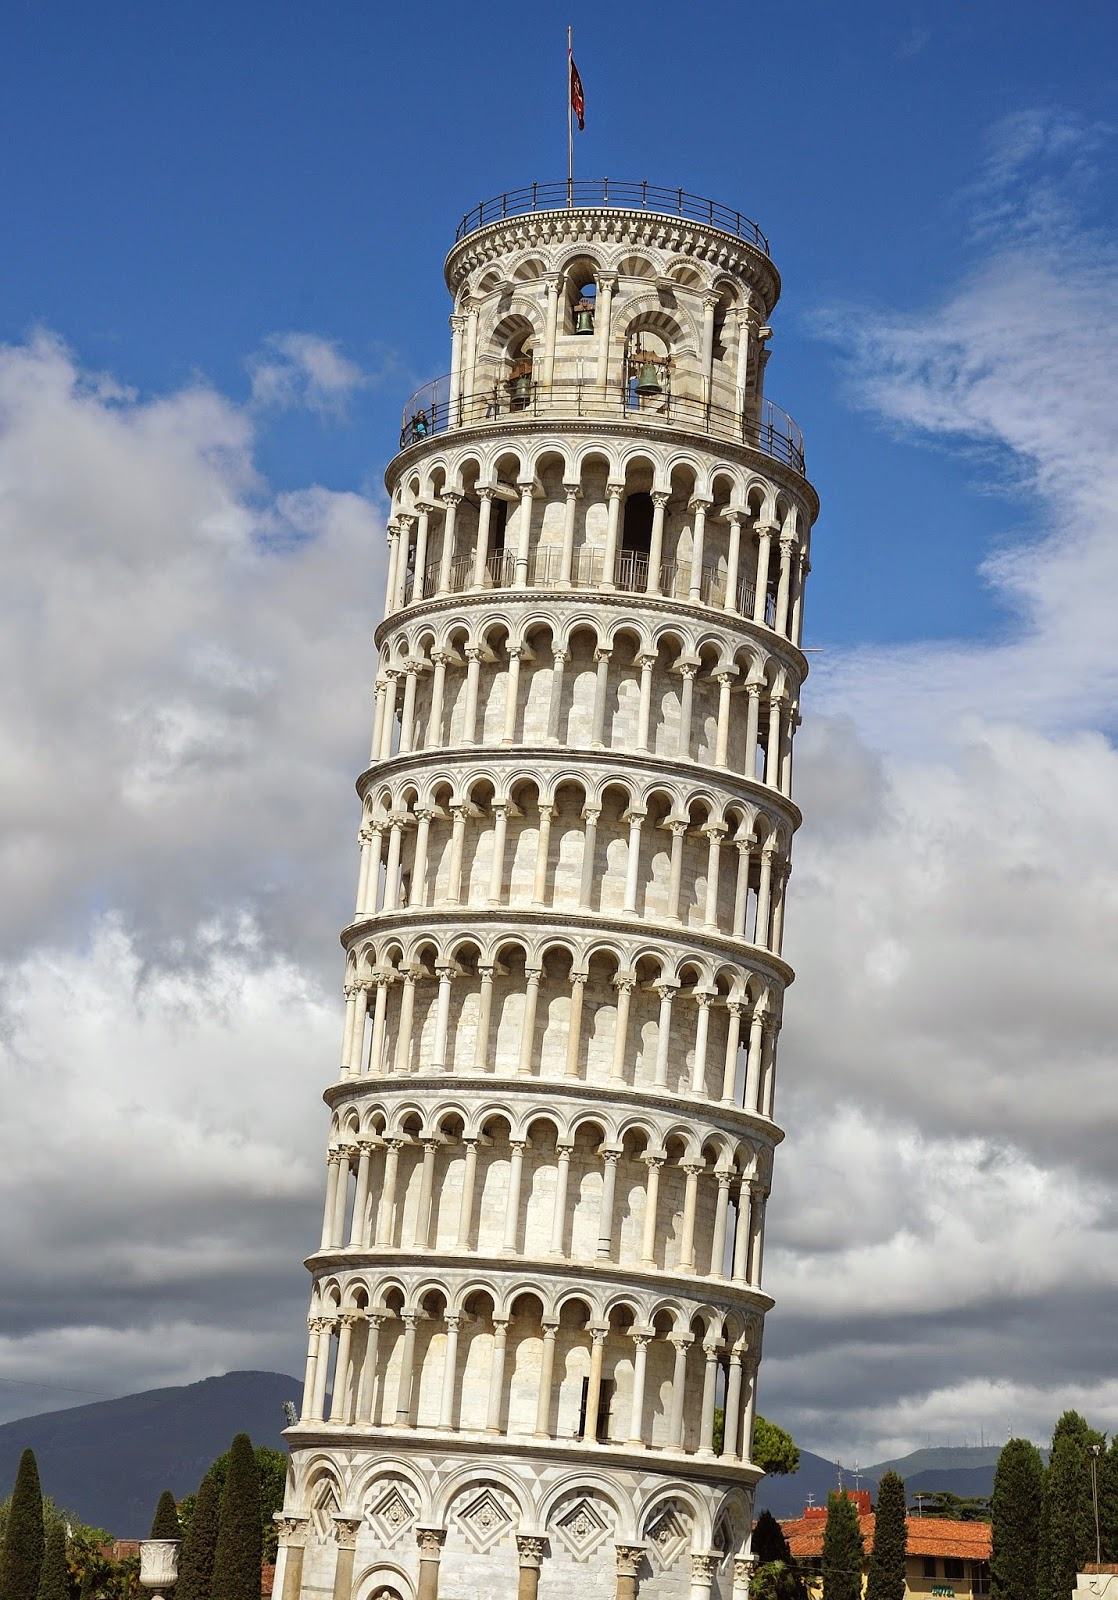 a picture of the leaning tower of Pisa